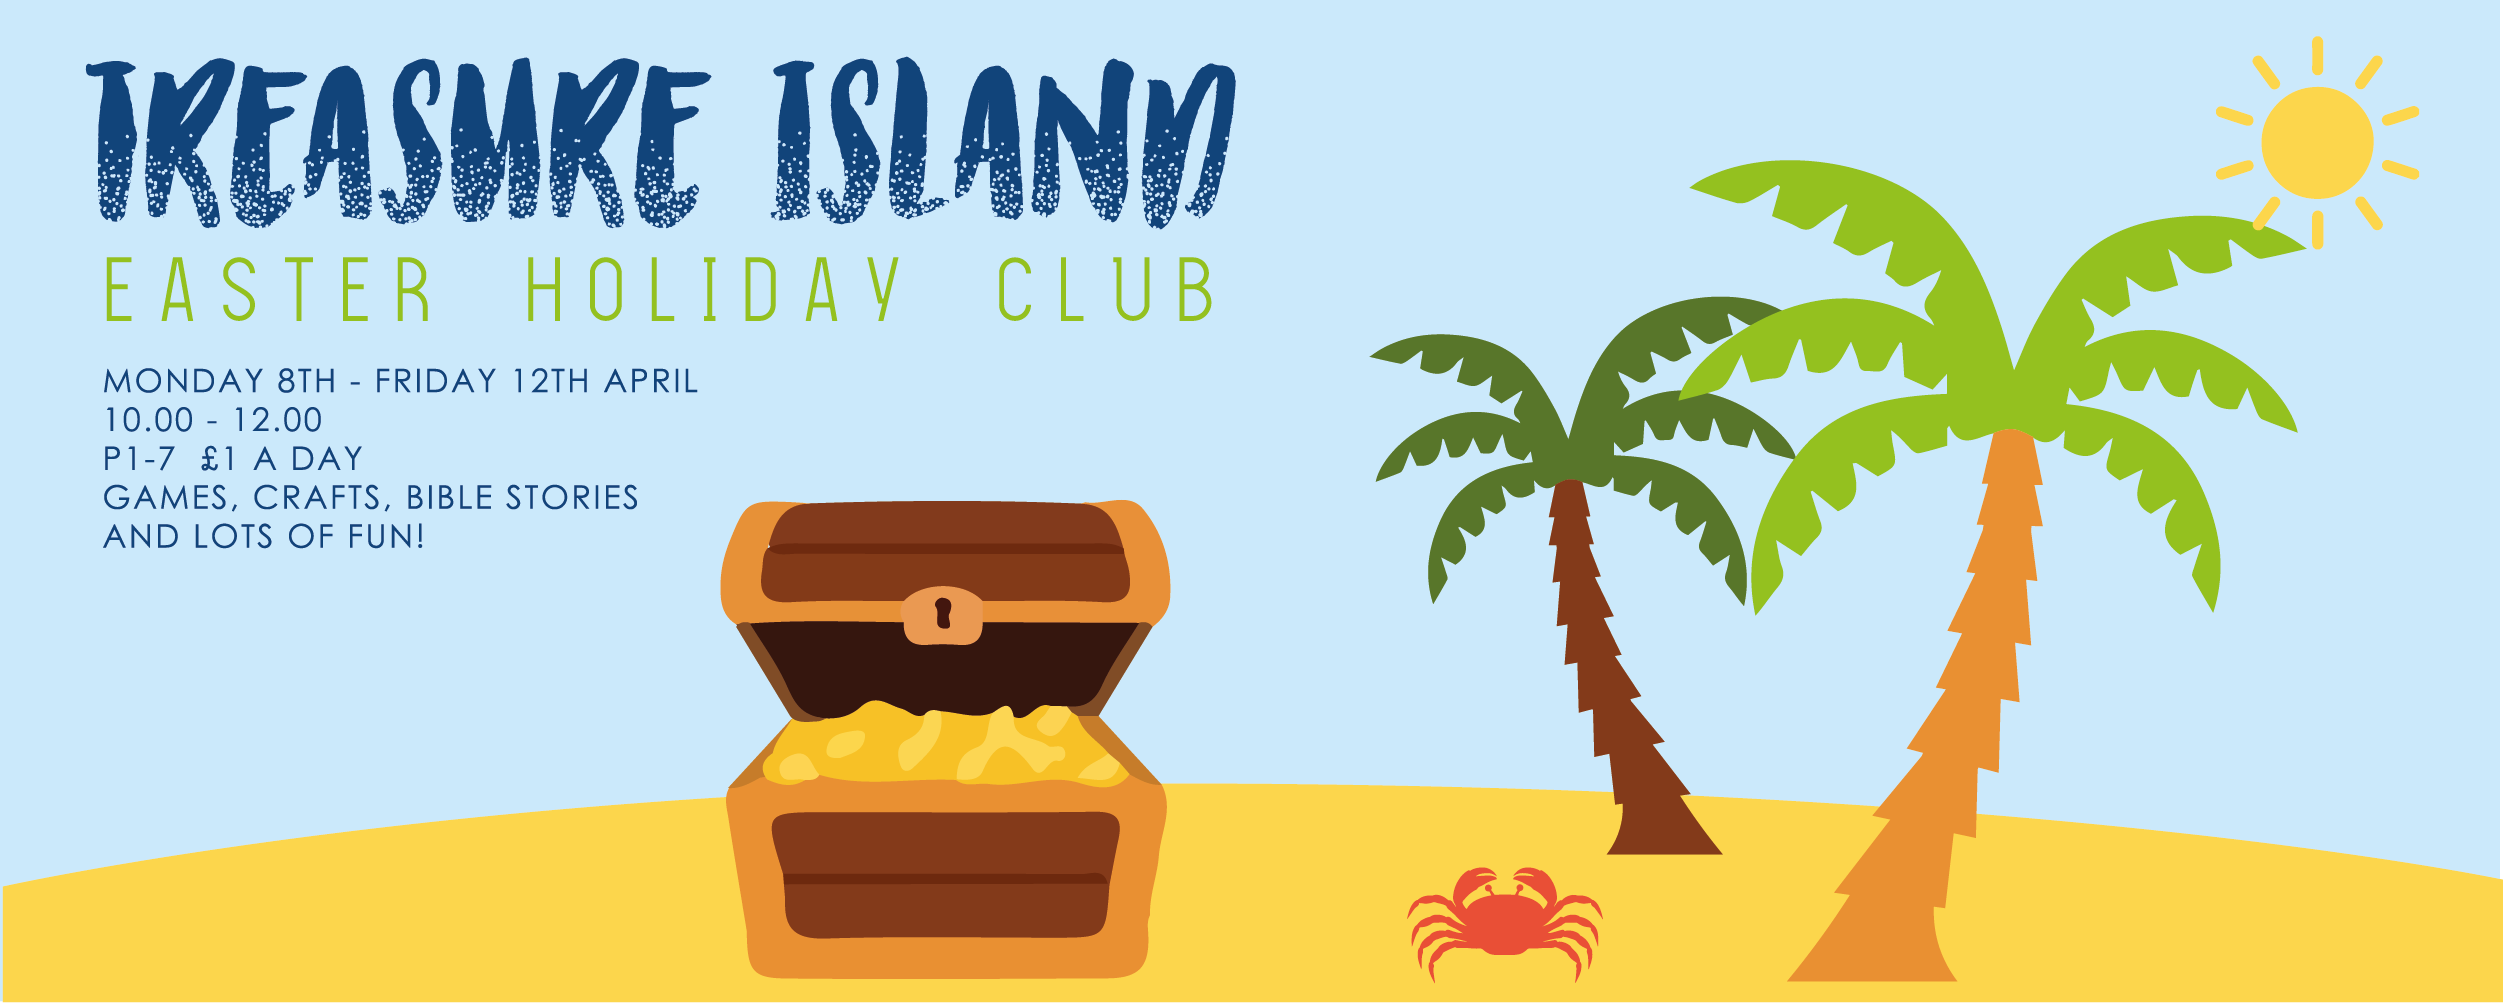 Treasure Island Holiday Club artwork